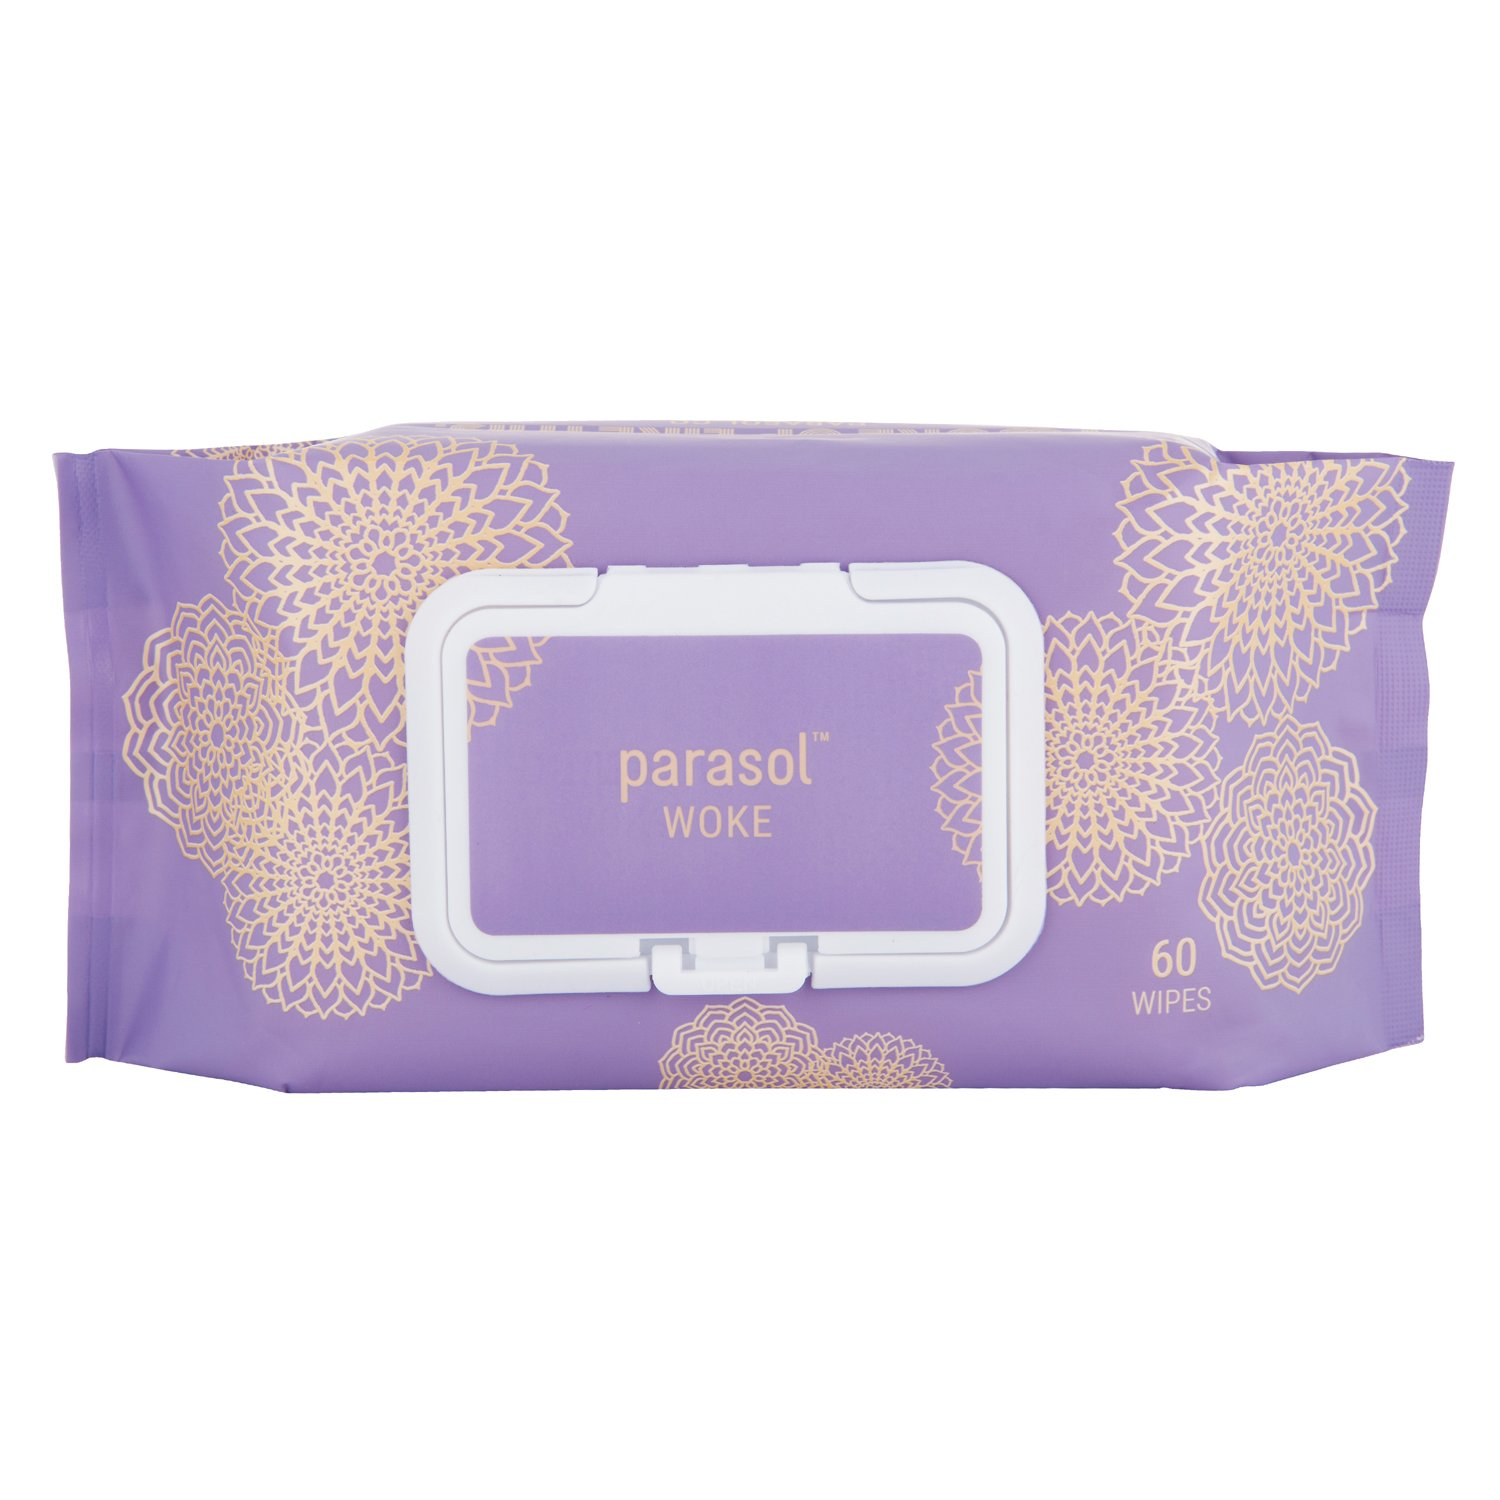 Parasol Baby Wipes, Hypoallergenic, Chlorine Free, Sensitive Skin Safe, Ultra Soft, Ultra Strong - Premium Quality, Thick, Full Size, Woke Wipe Collection, 600 Count Parasol Co. (HPC)